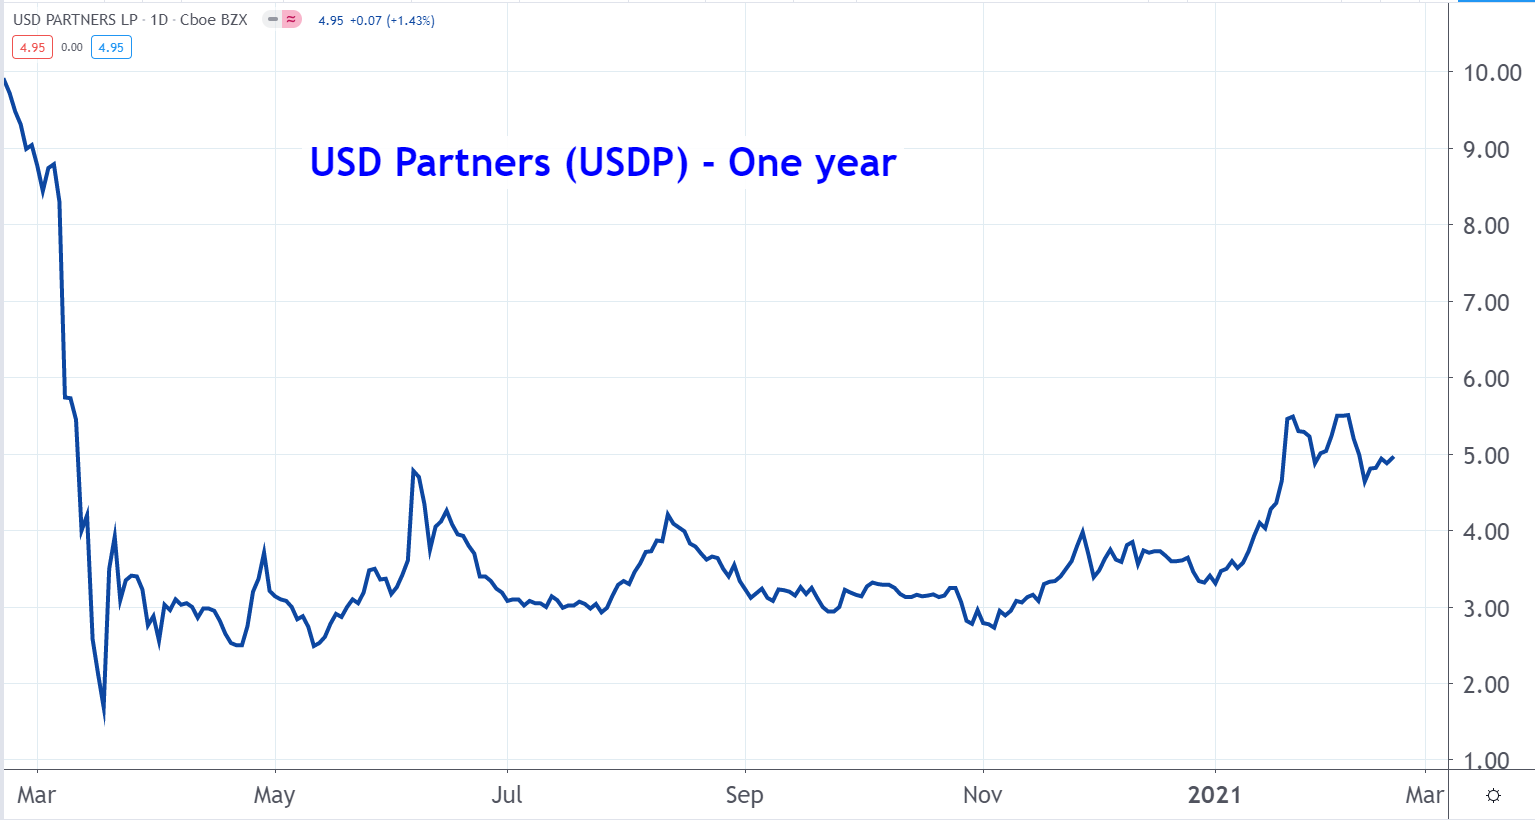 Line graph of USD Partners stock price from March 2020 to March 2021, showing a slow uptrend after a massive plummet at the beginning of the year